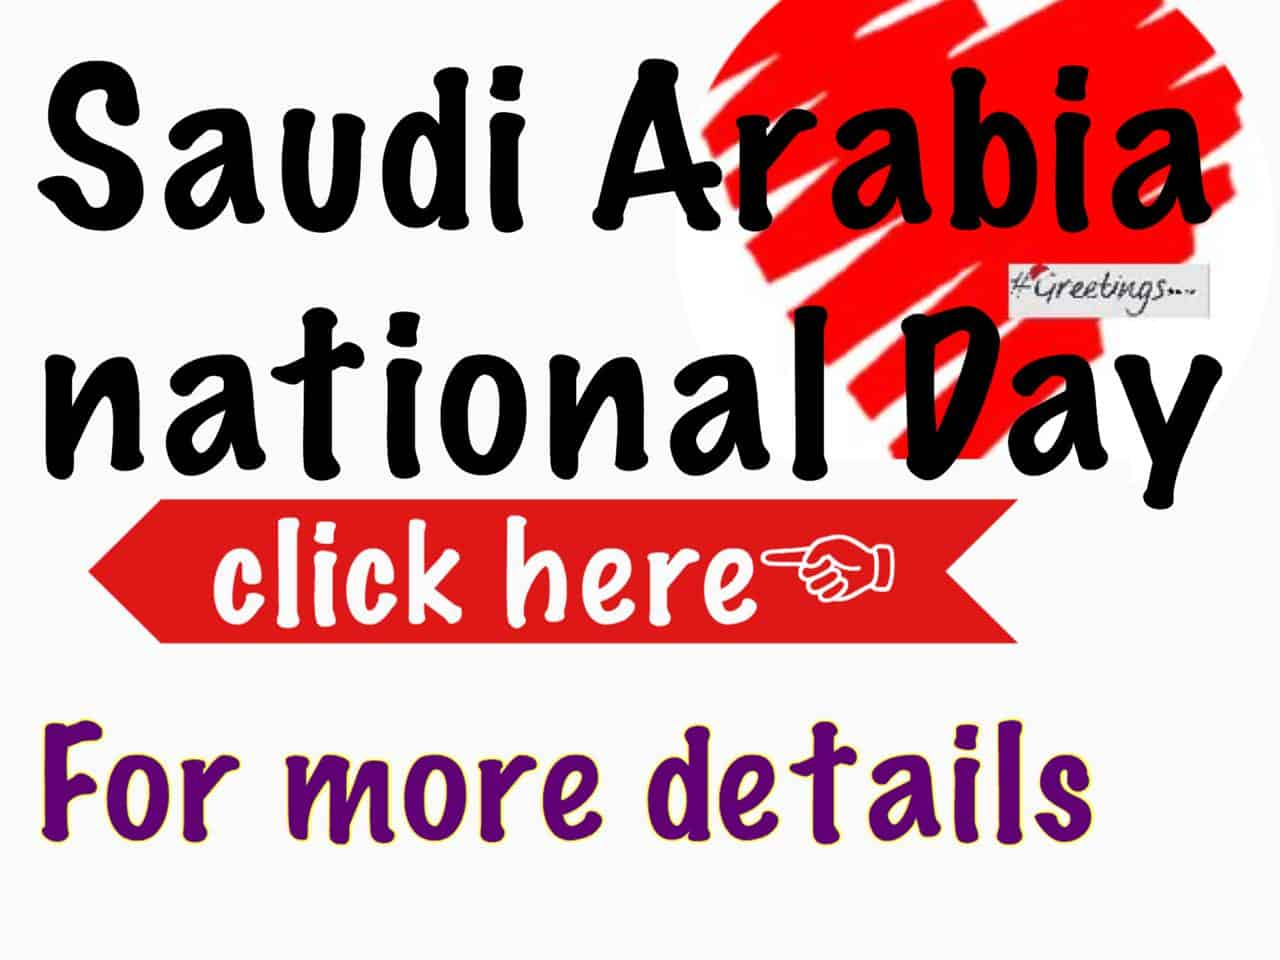 Saudi Arabia National day 2020